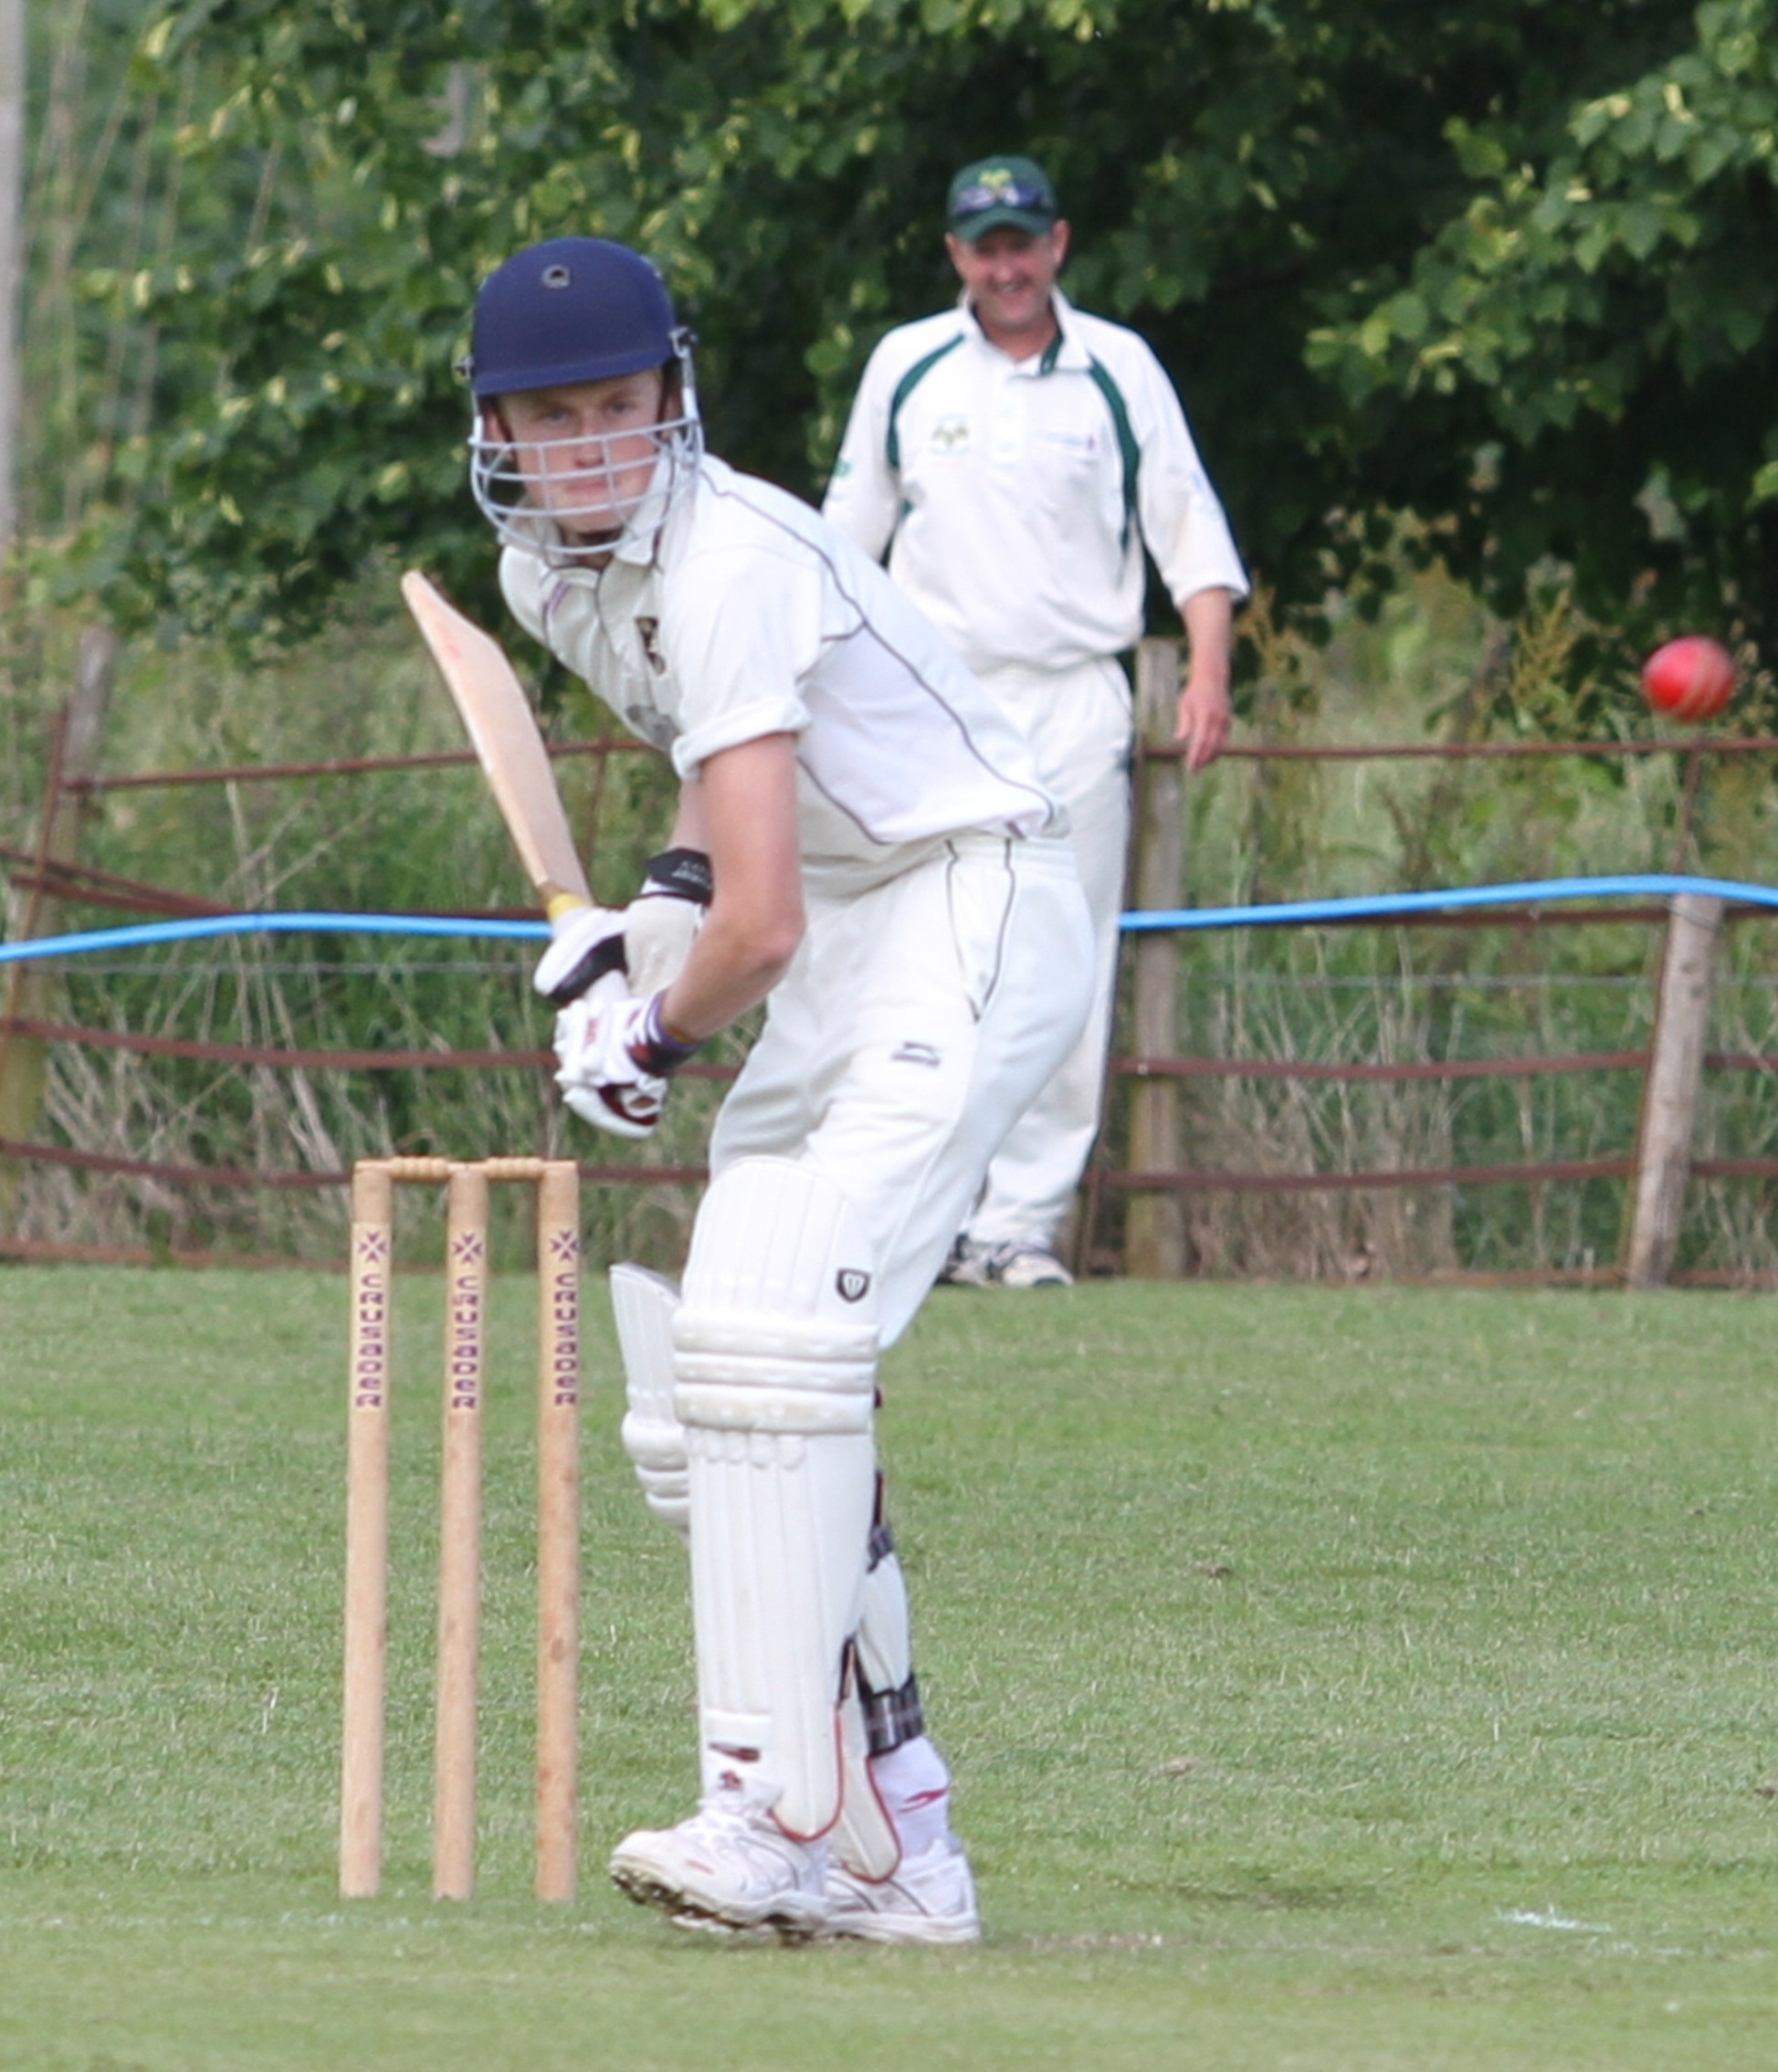 Arthur Smith scored 10 runs in Knighton-on-Teme's nine-wicket loss. Photograph: Keith Gluyas.